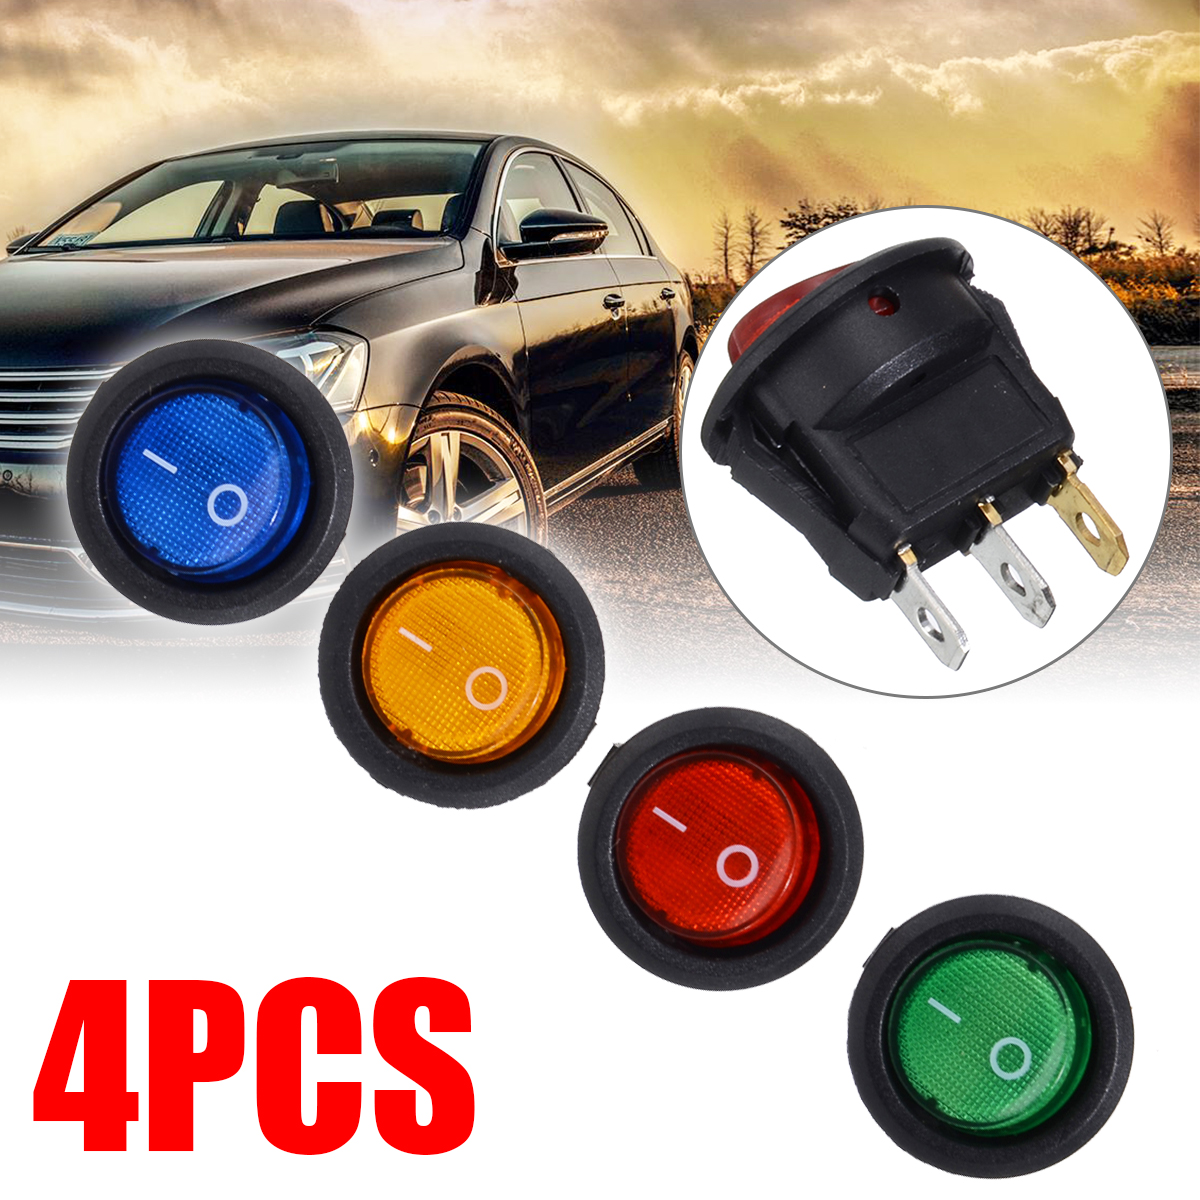 Image 2 - 4pcs/set LED 12V 16A Car Boat ON/OFF LED Round Dot Rocker Toggle Switch SPST Switch 4 Colors Red/ Blue/ Green/ Yellow-in Car Switches & Relays from Automobiles & Motorcycles